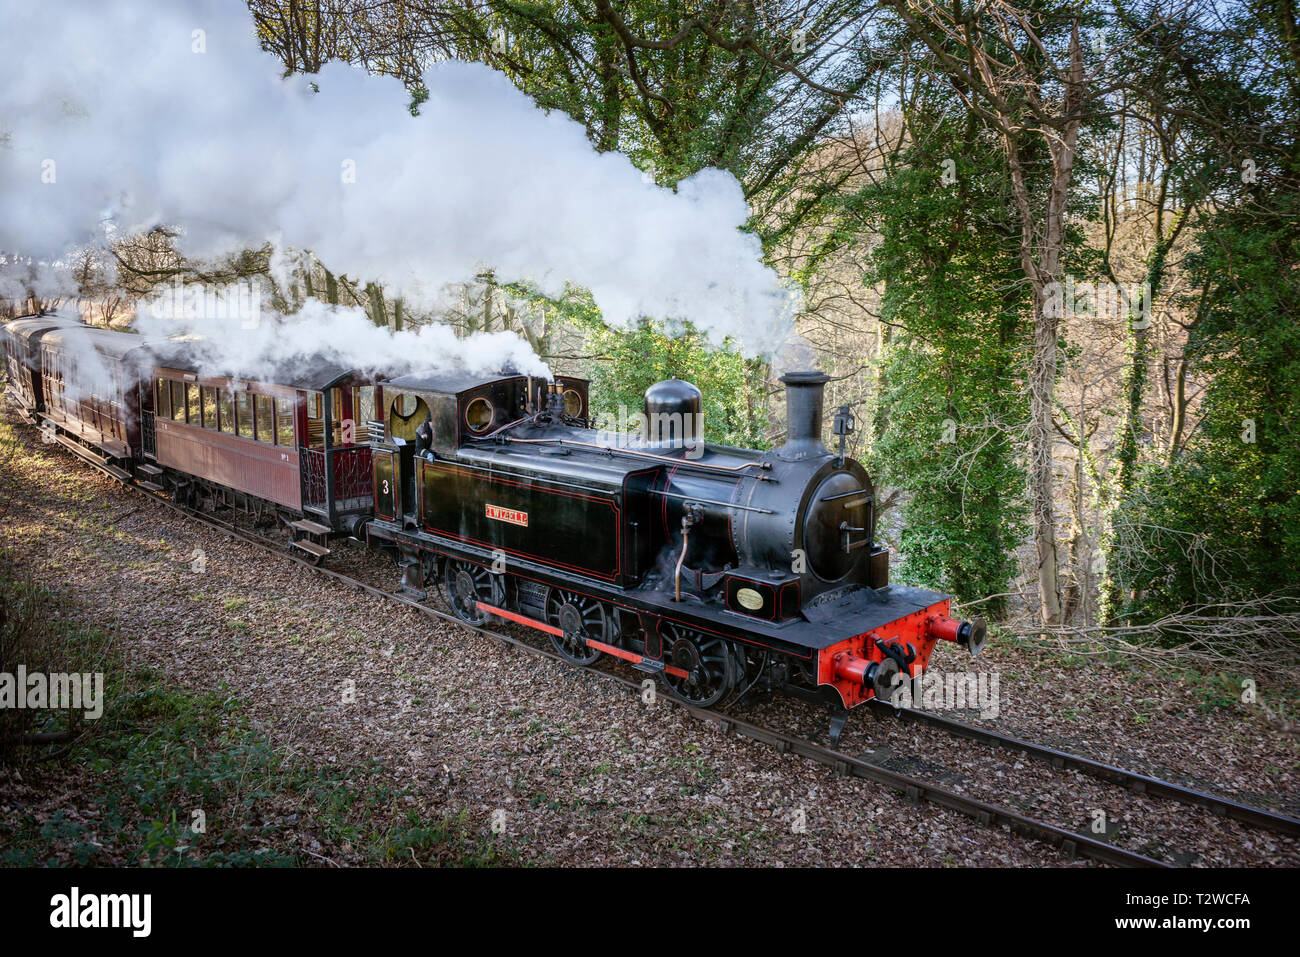 Steam Train with engine belching smoke and steam.  0-6-0T Locomotive Twizell pulling passenger carriages on Tanfield Railway County Durham - Stock Image